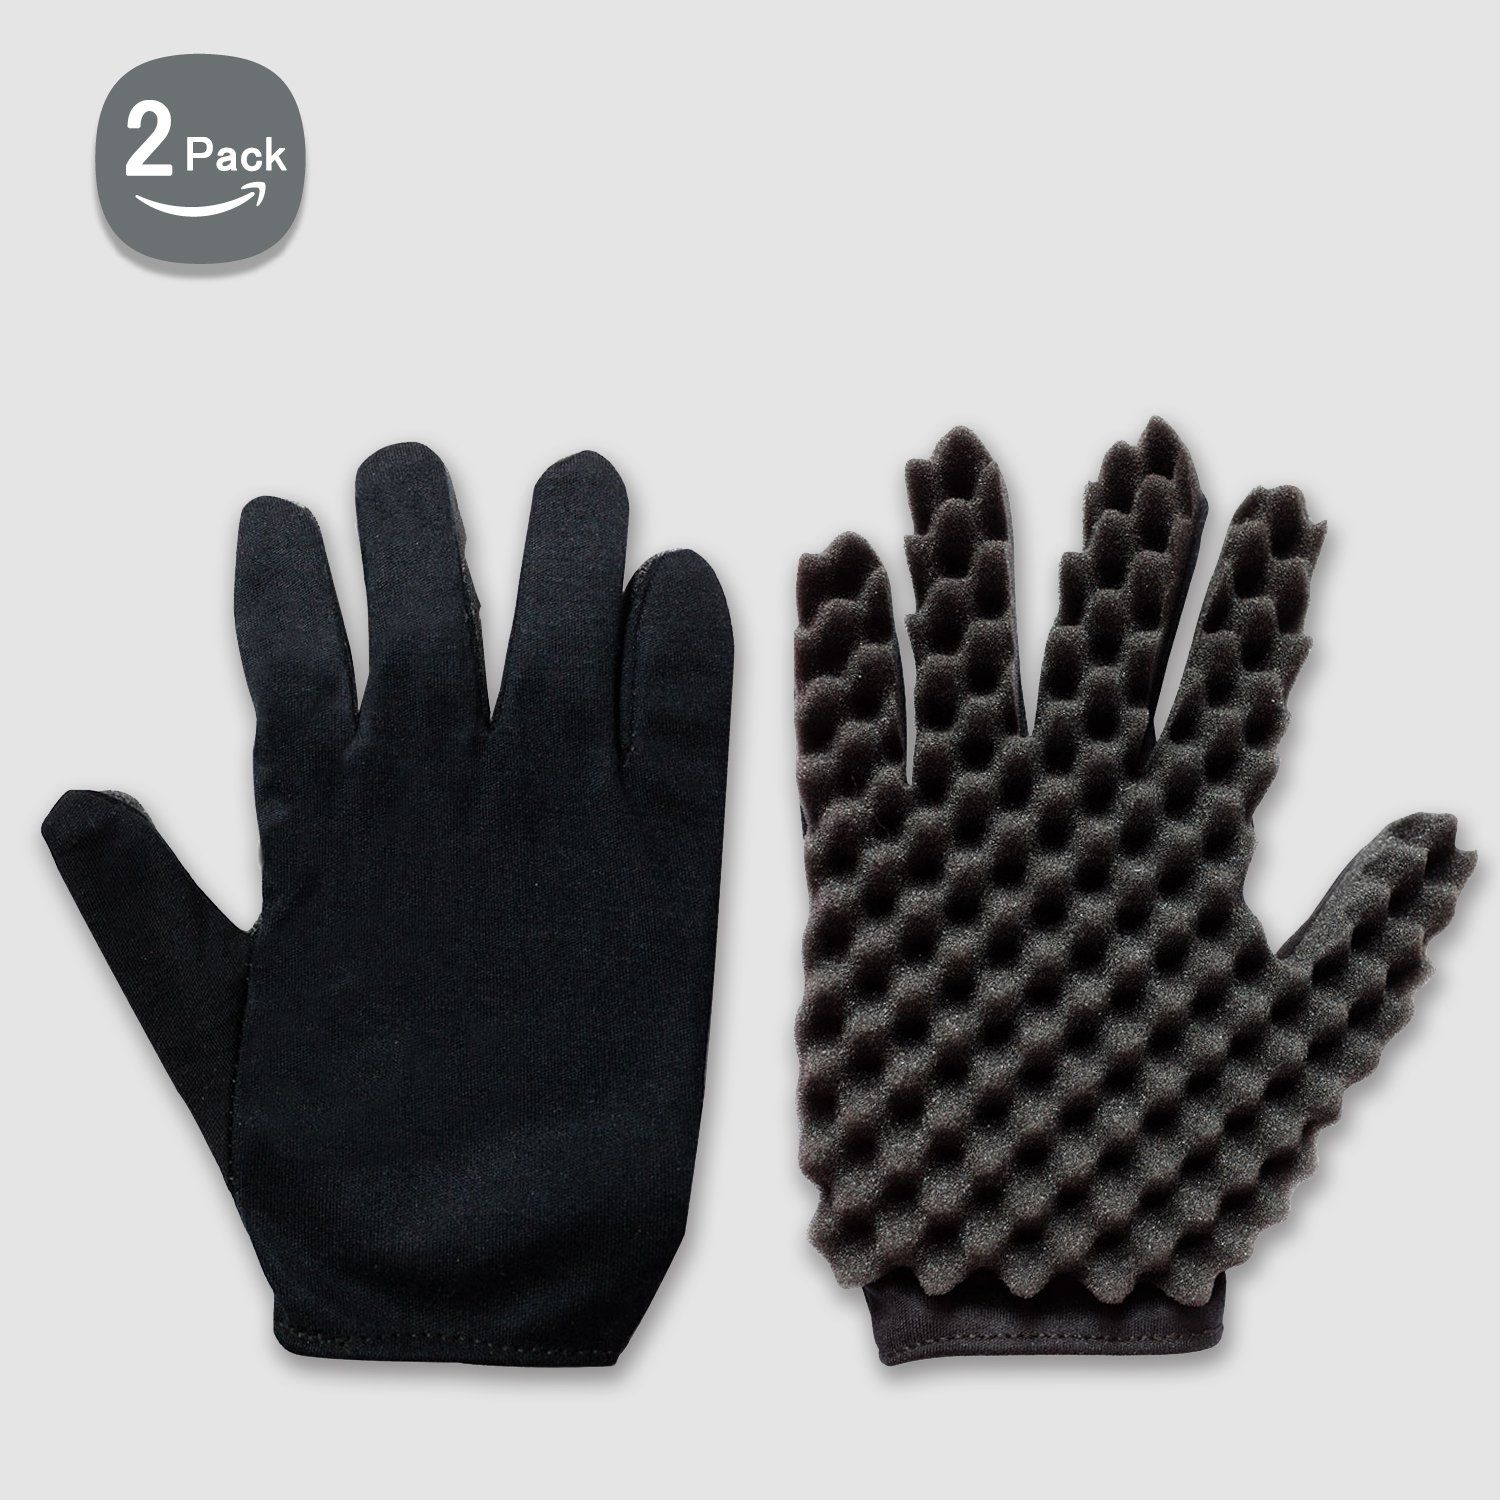 Curl Hair Sponge Gloves Tutorial For Barbers Wave Black Twist Brush Styling Tool For Men And Women Curly Hair Care Curly Hair Women Hair Sponge Curly Hair Care